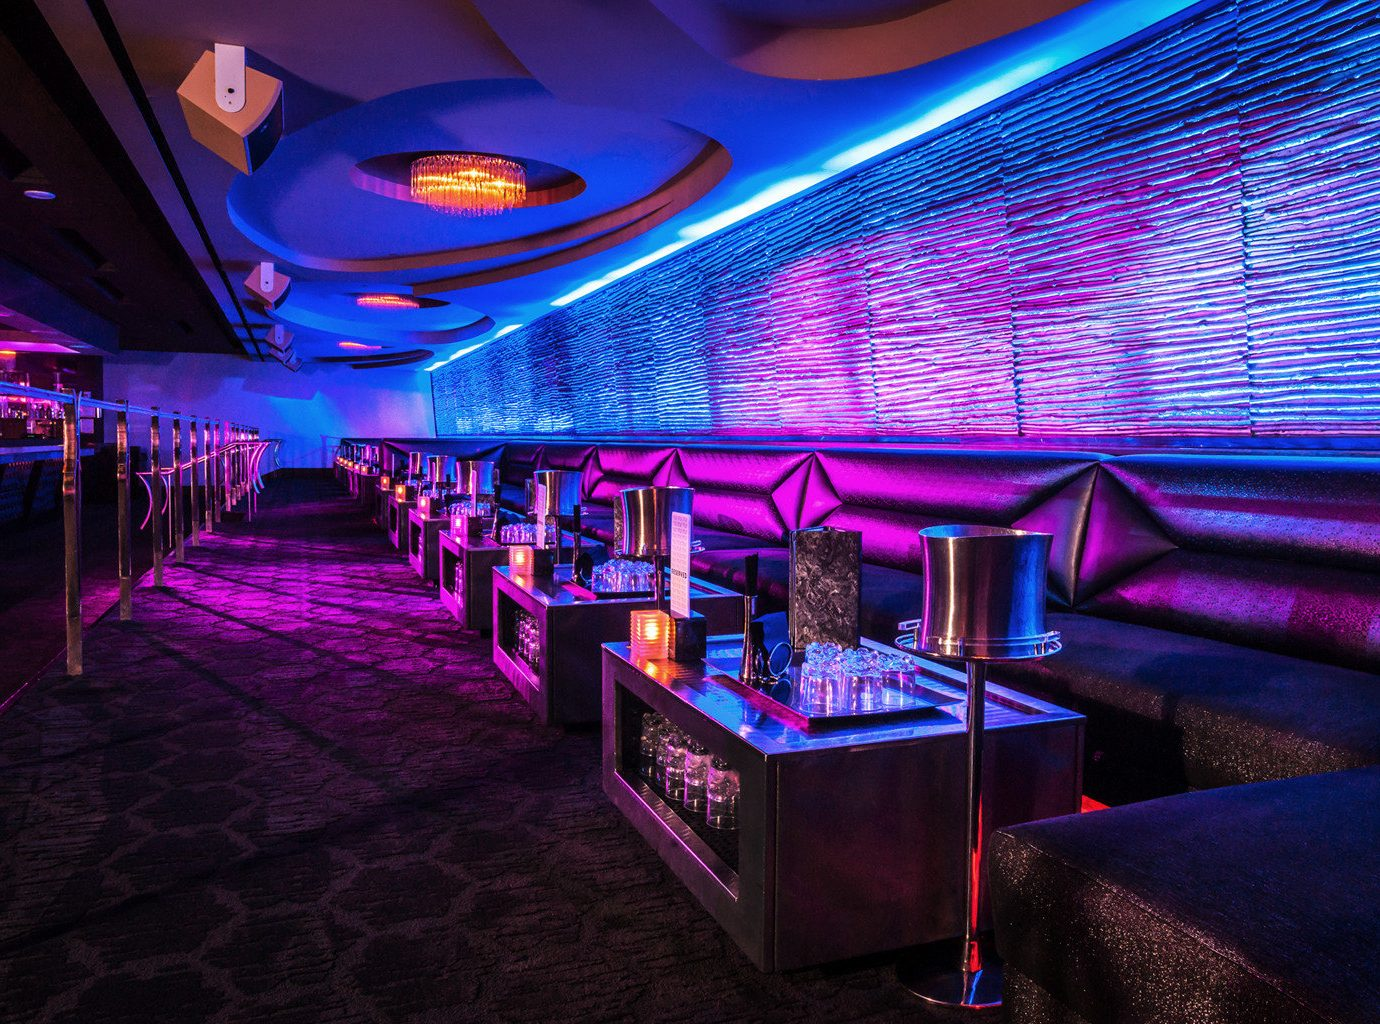 Bar Casino Drink Lounge Modern Nightlife Travel Trends Trip Ideas floor indoor nightclub room ceiling function hall music venue disco club purple furniture